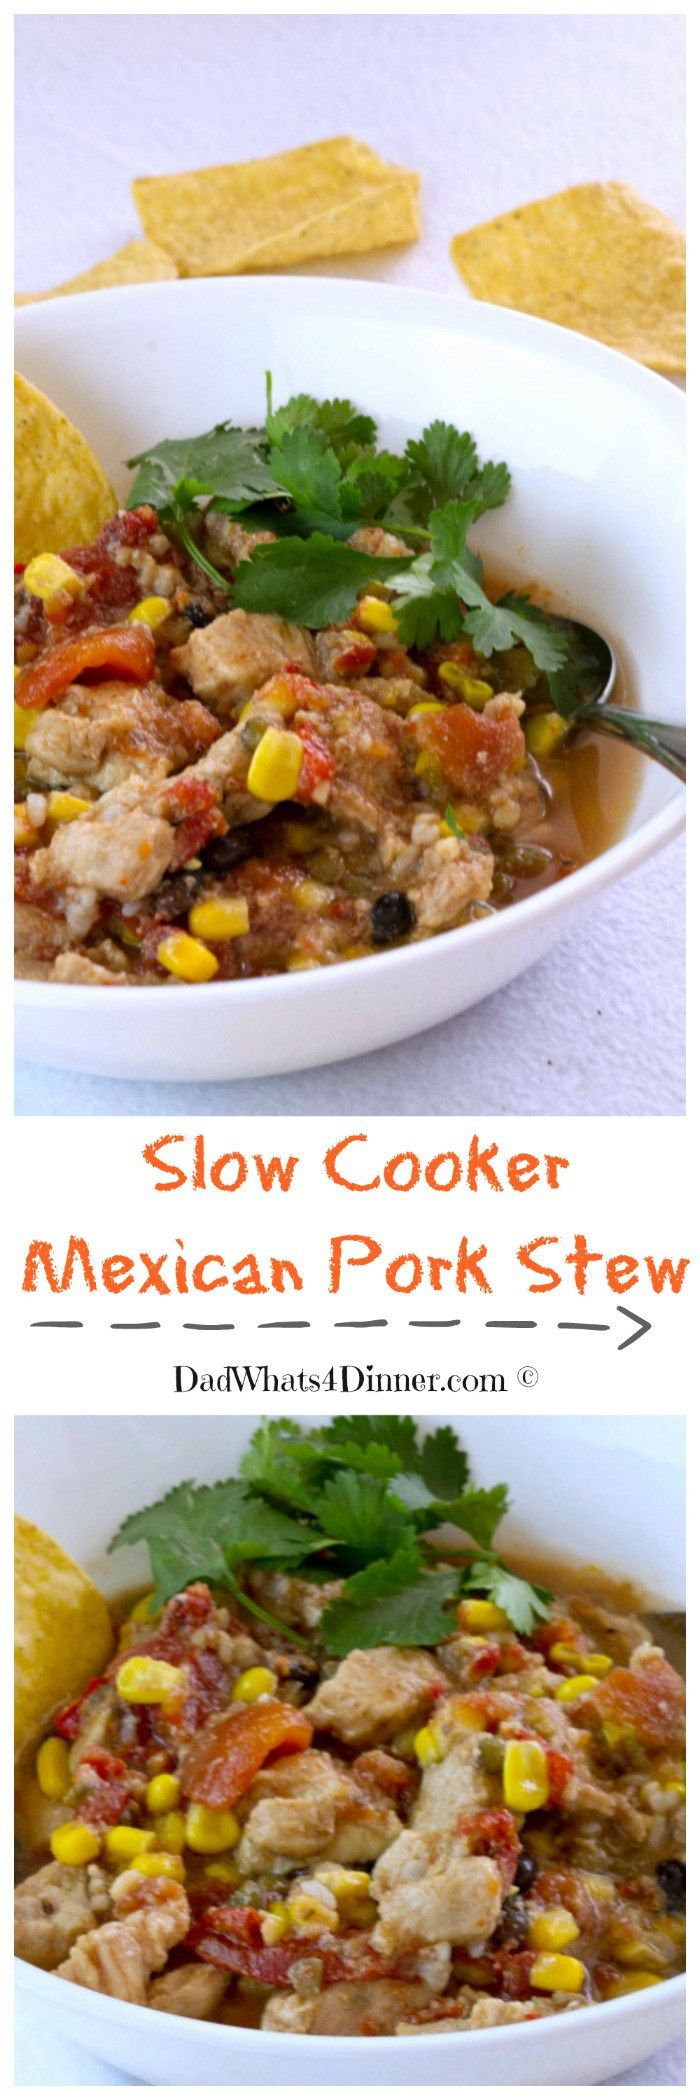 My easy Slow Cooker Mexican Pork Stew is an awesome weeknight meal. Loaded with protein and veggies.